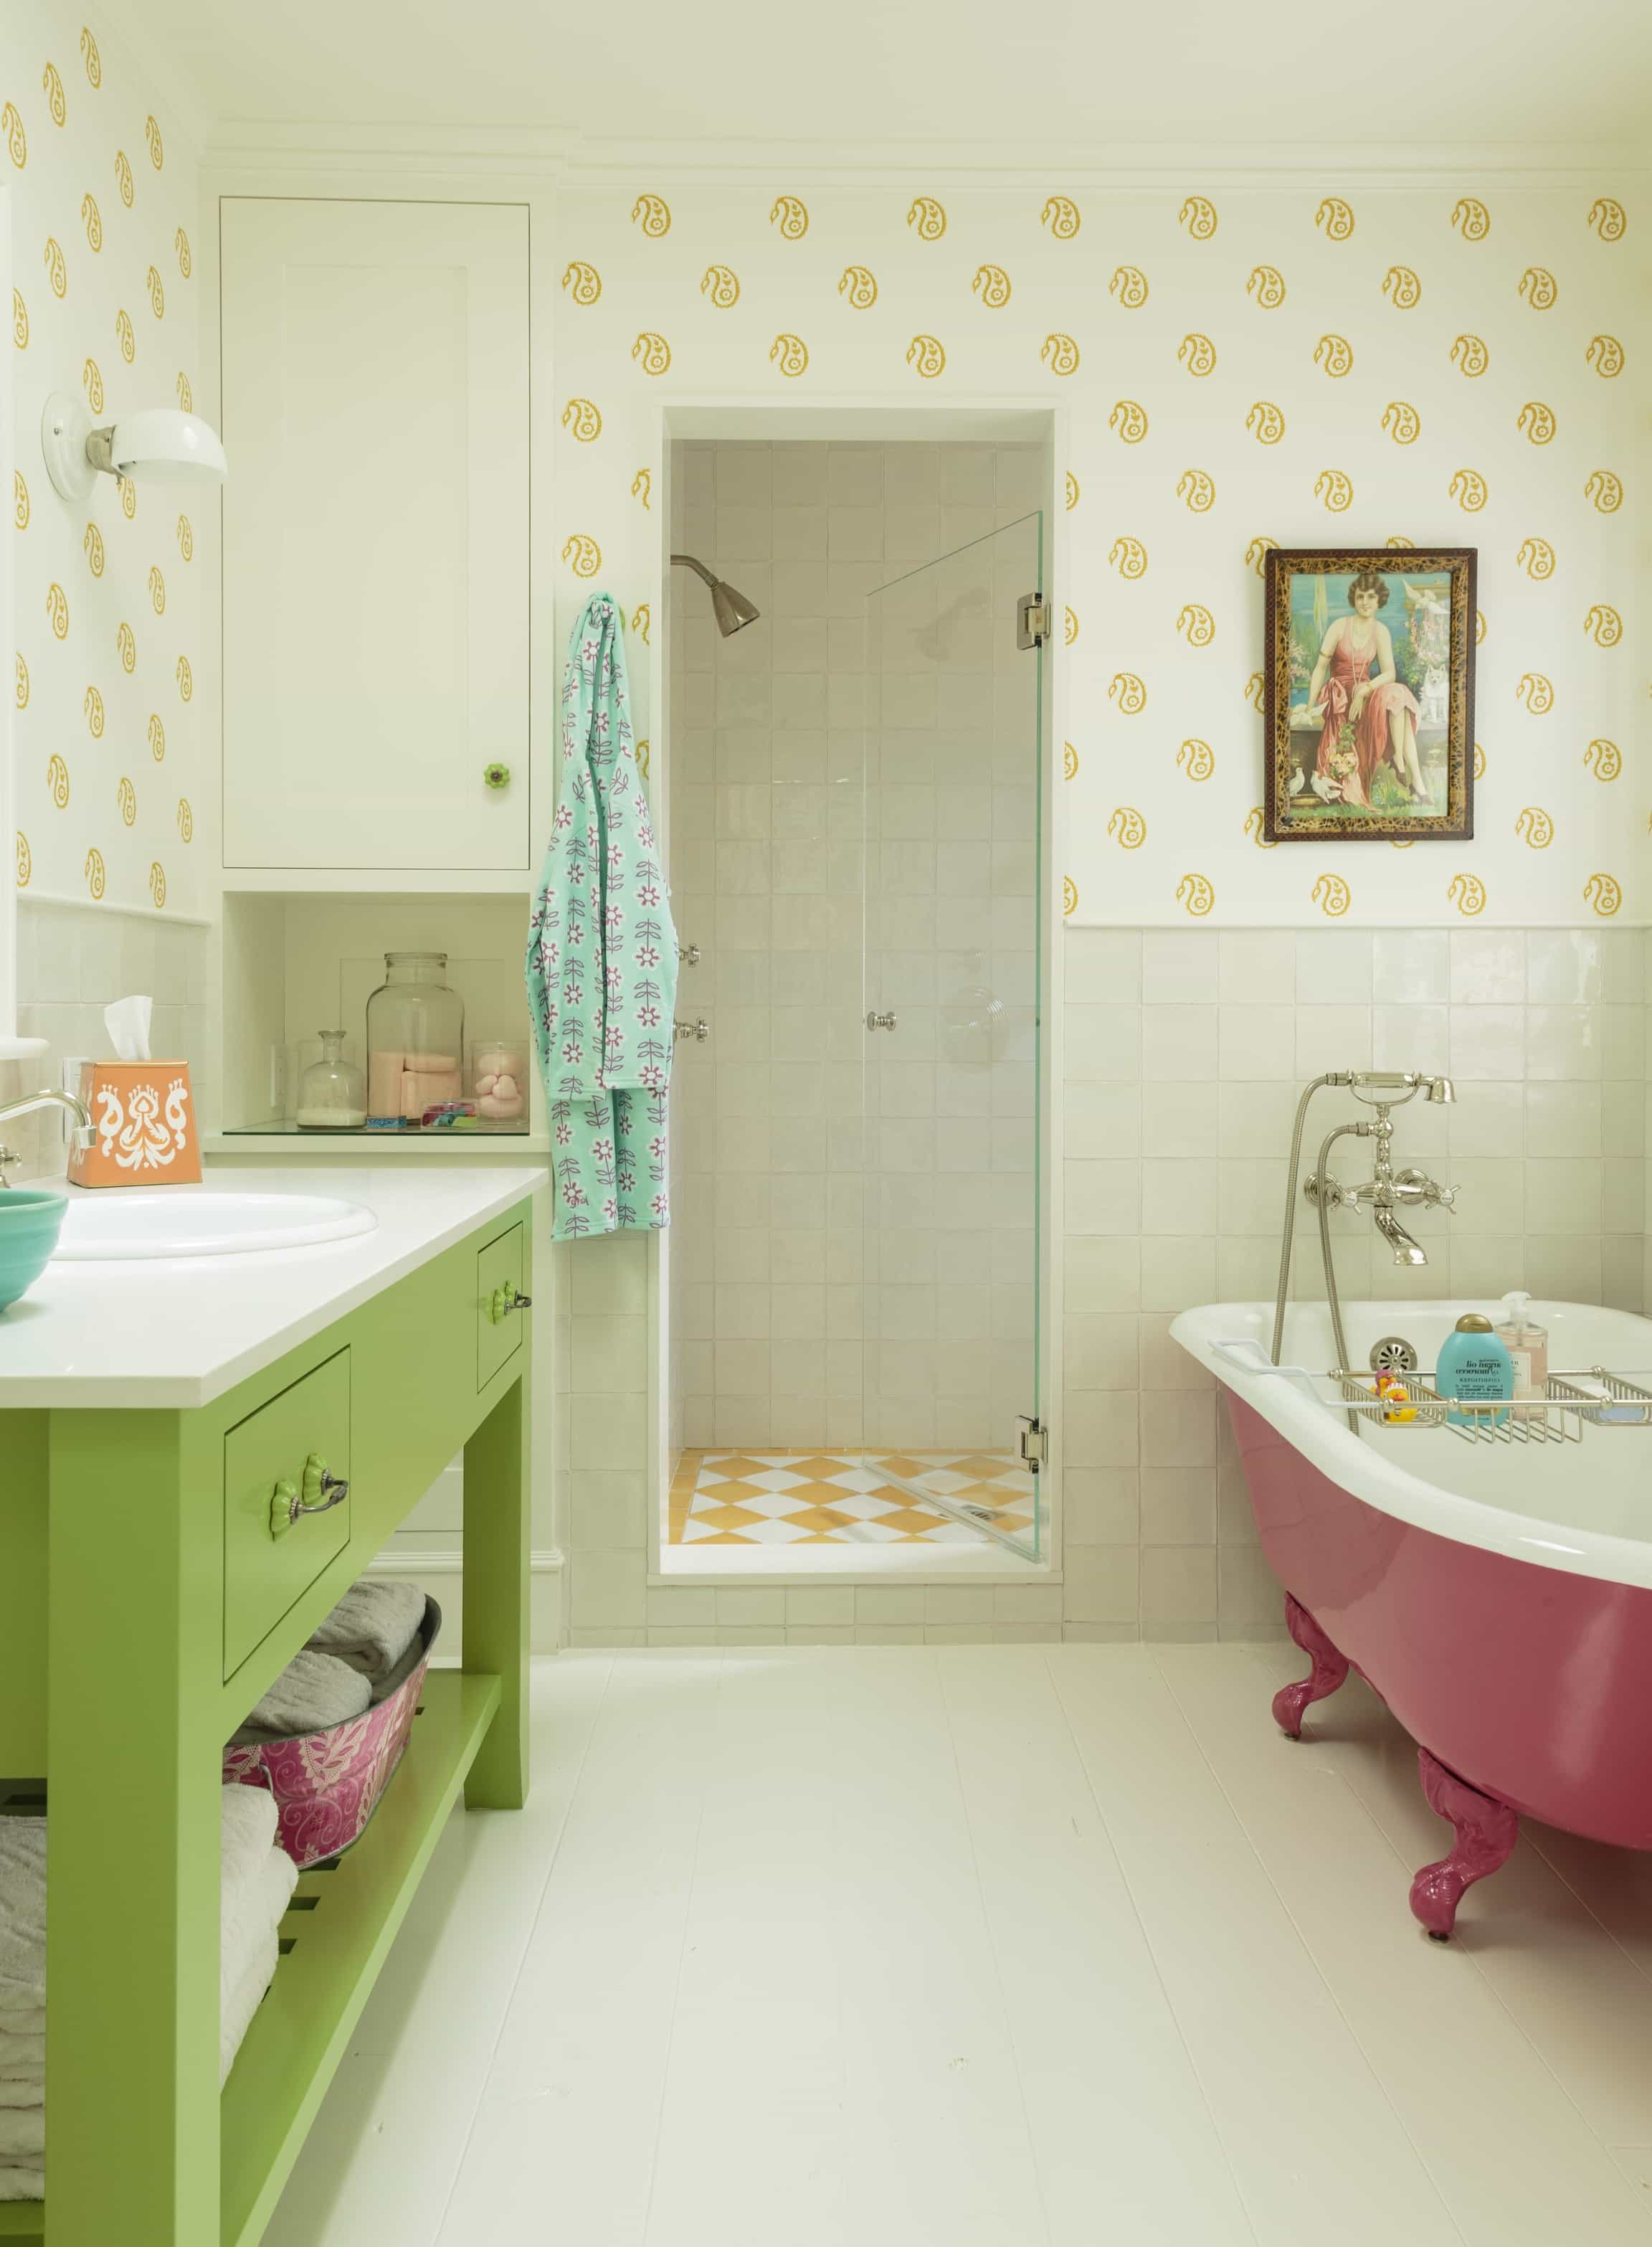 Featured Image of Cozy Cottage Bathroom With Yellow Patterned Tile And Wallpaper